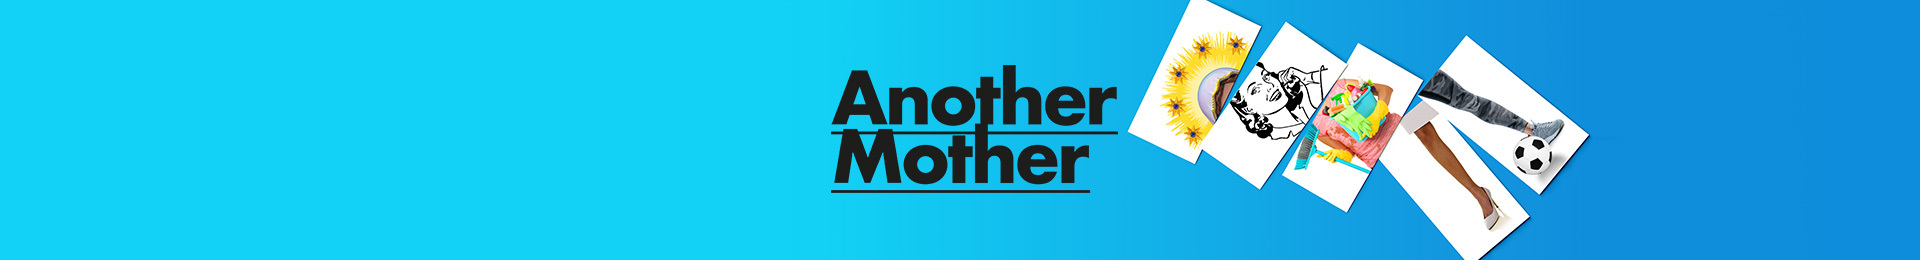 Another Mother banner image